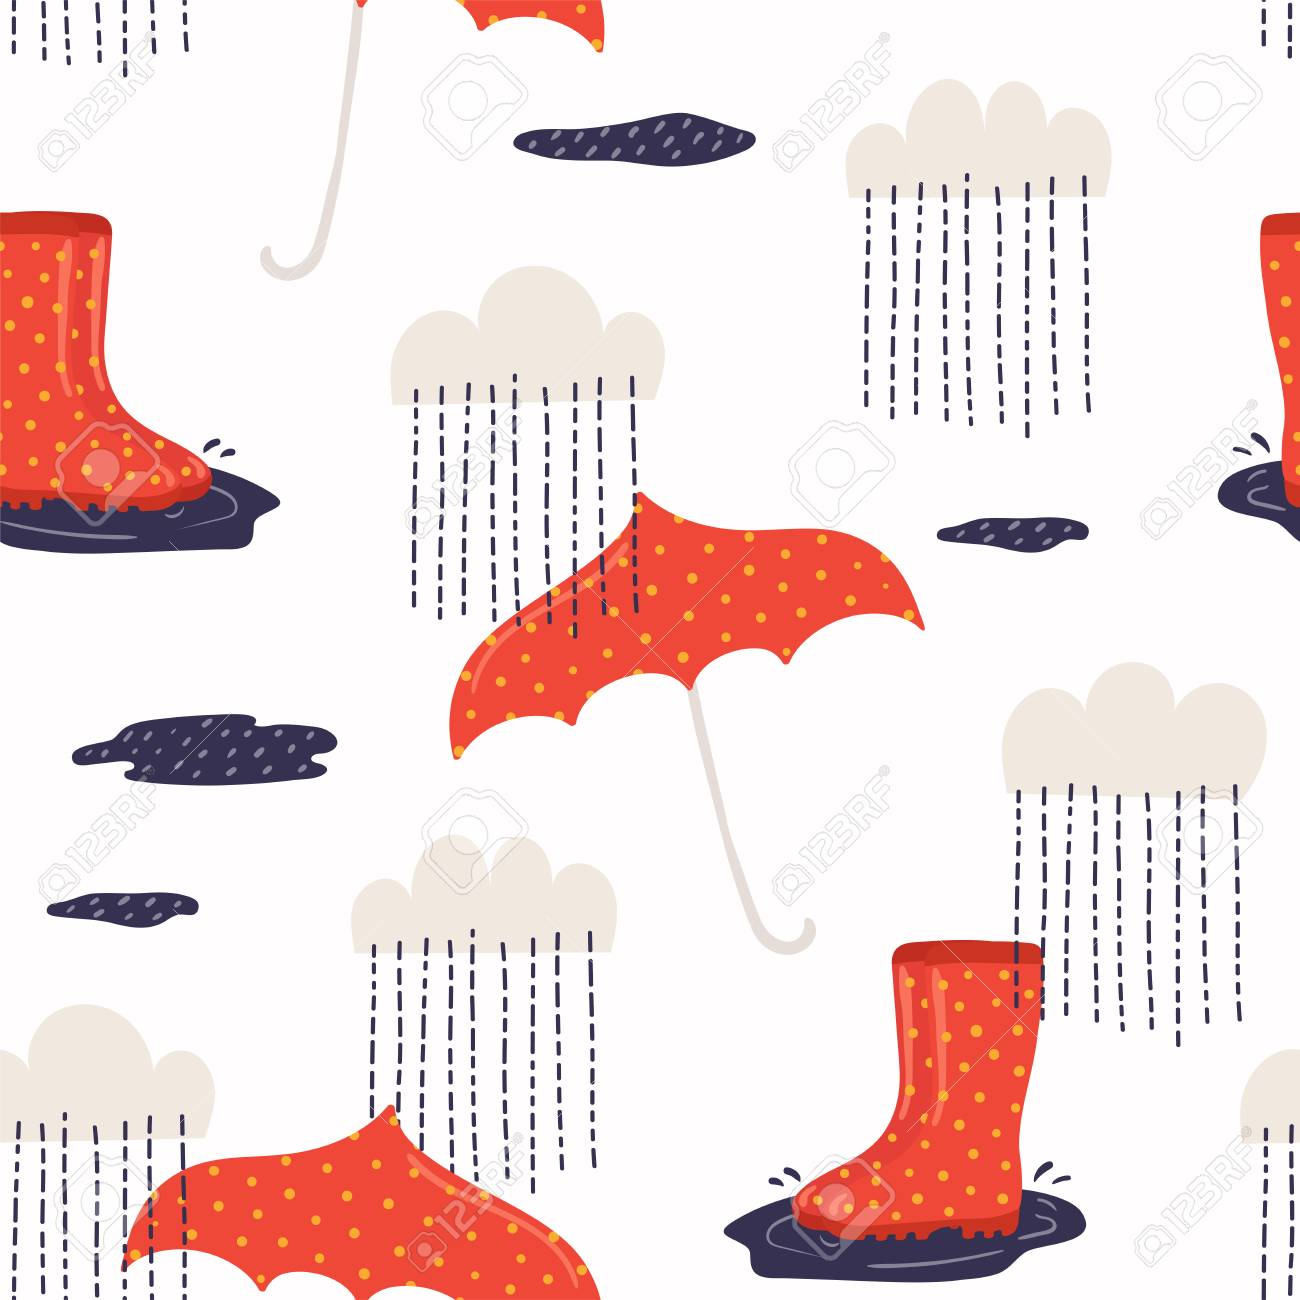 photograph about Umbrella Pattern Printable Free referred to as Seamless repeat behavior with wellington boots, umbrella, rain,..